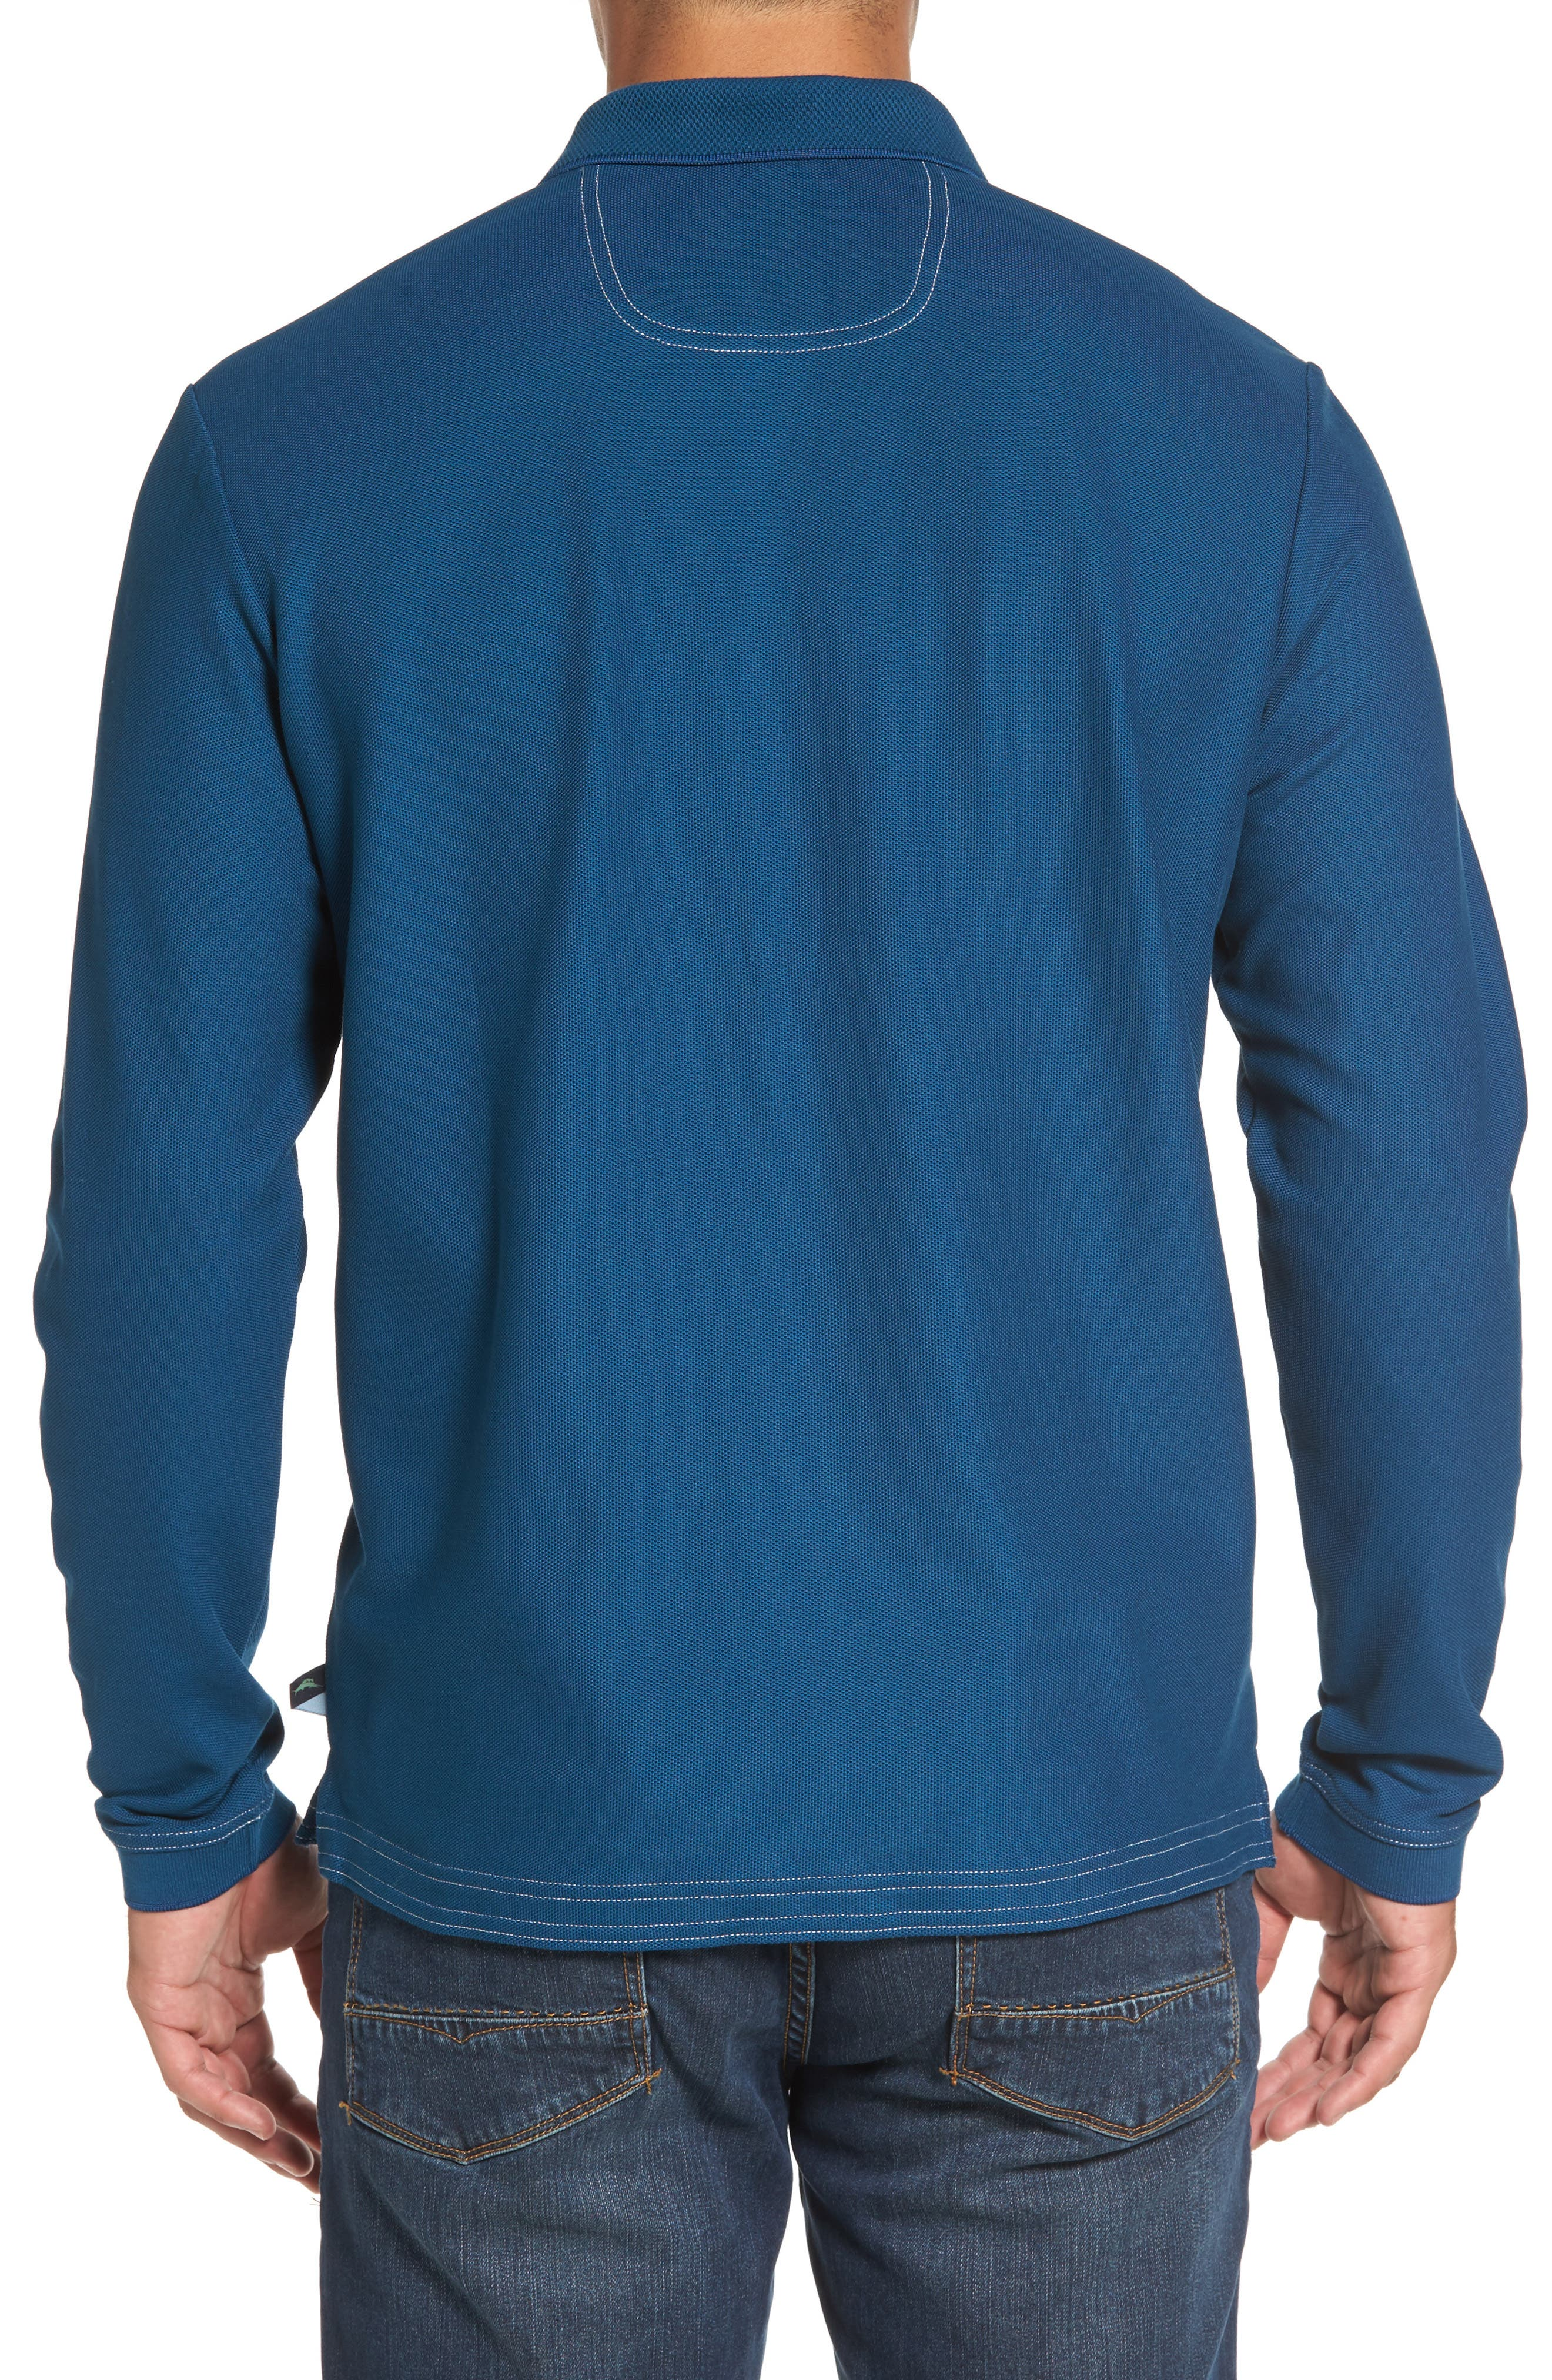 Emfielder Long Sleeve Polo,                             Alternate thumbnail 2, color,                             Slate Teal